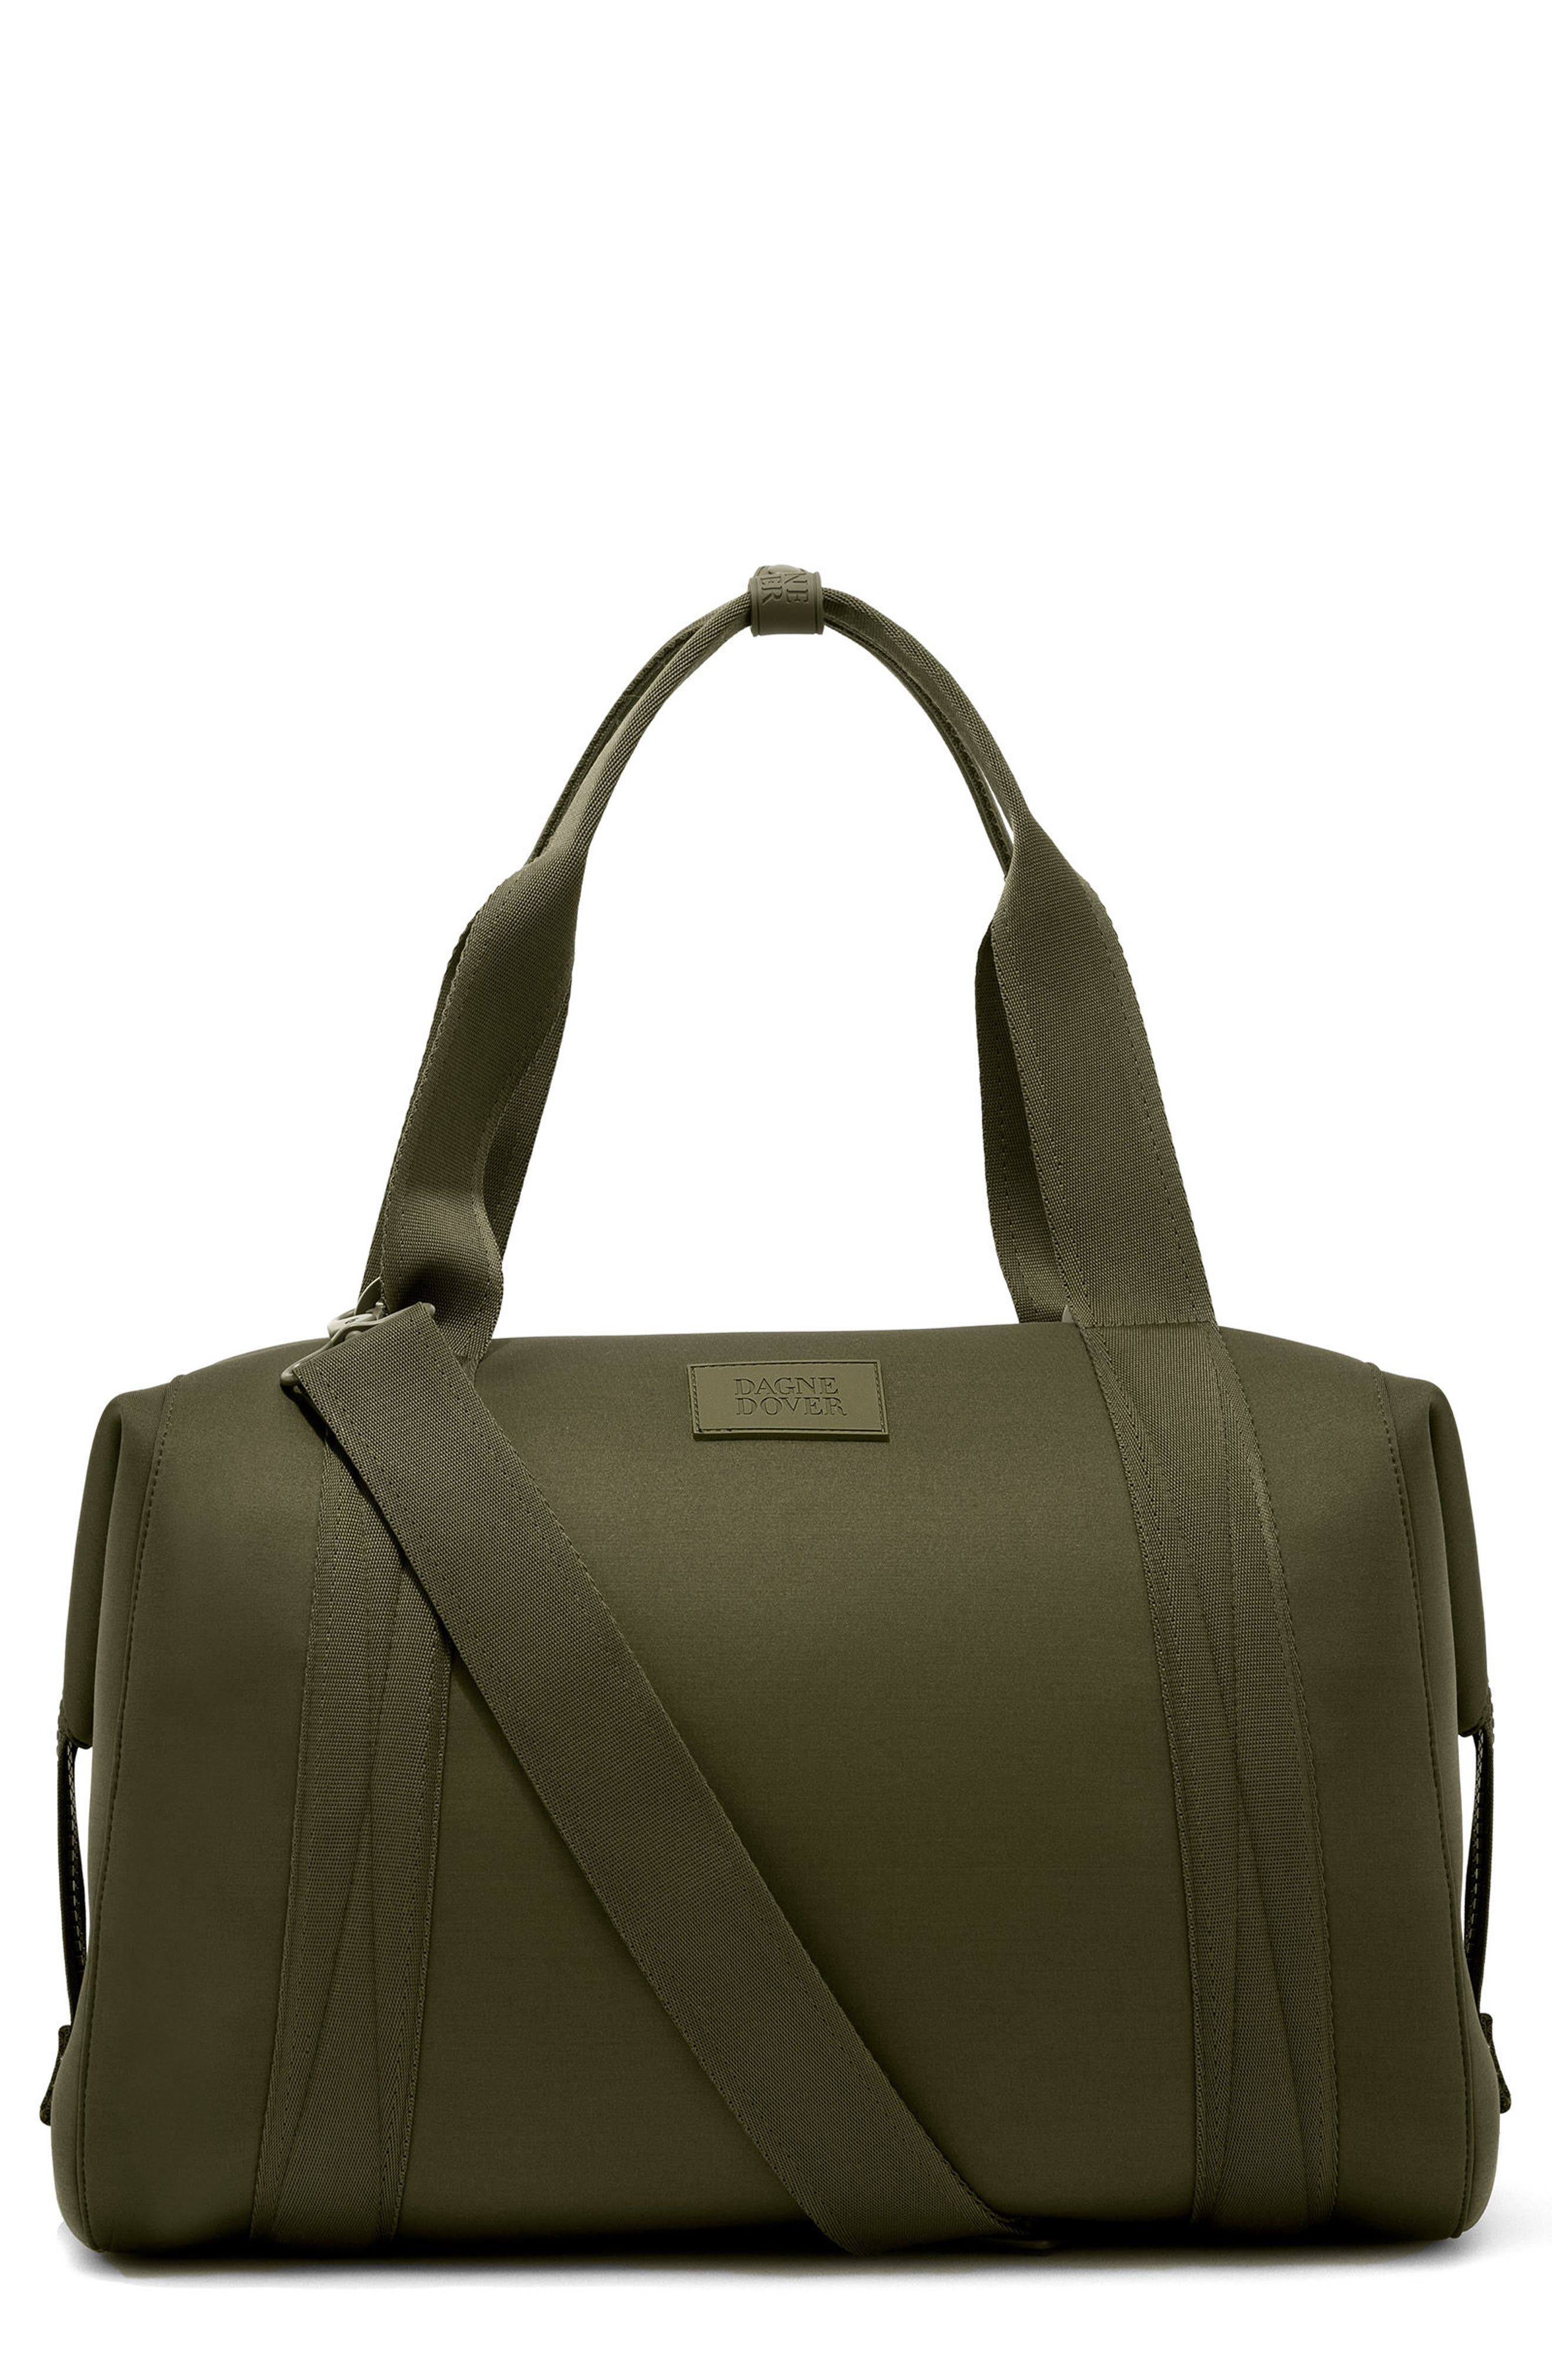 Alternate Image 1 Selected - Dagne Dover Large Landon Neoprene Duffel Bag